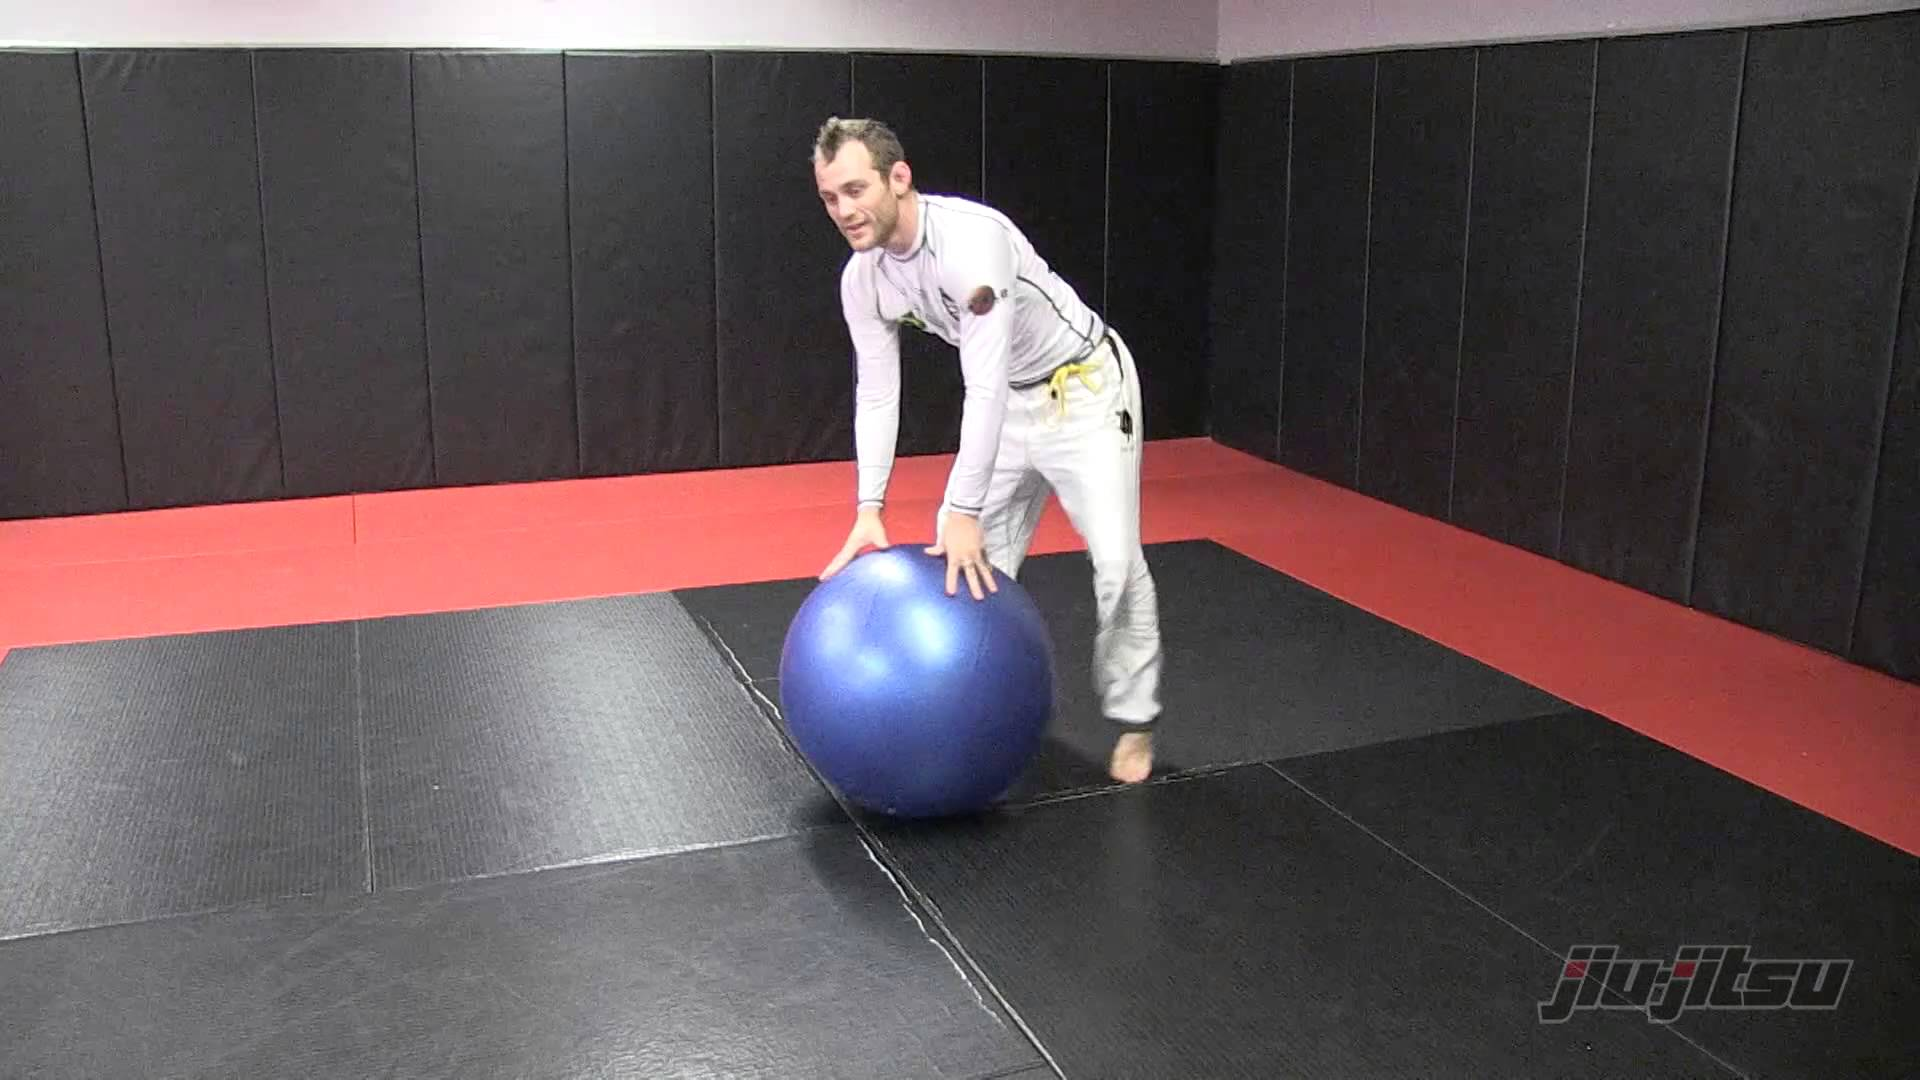 How To Improve Your Jiu-Jitsu With A Stability Ball